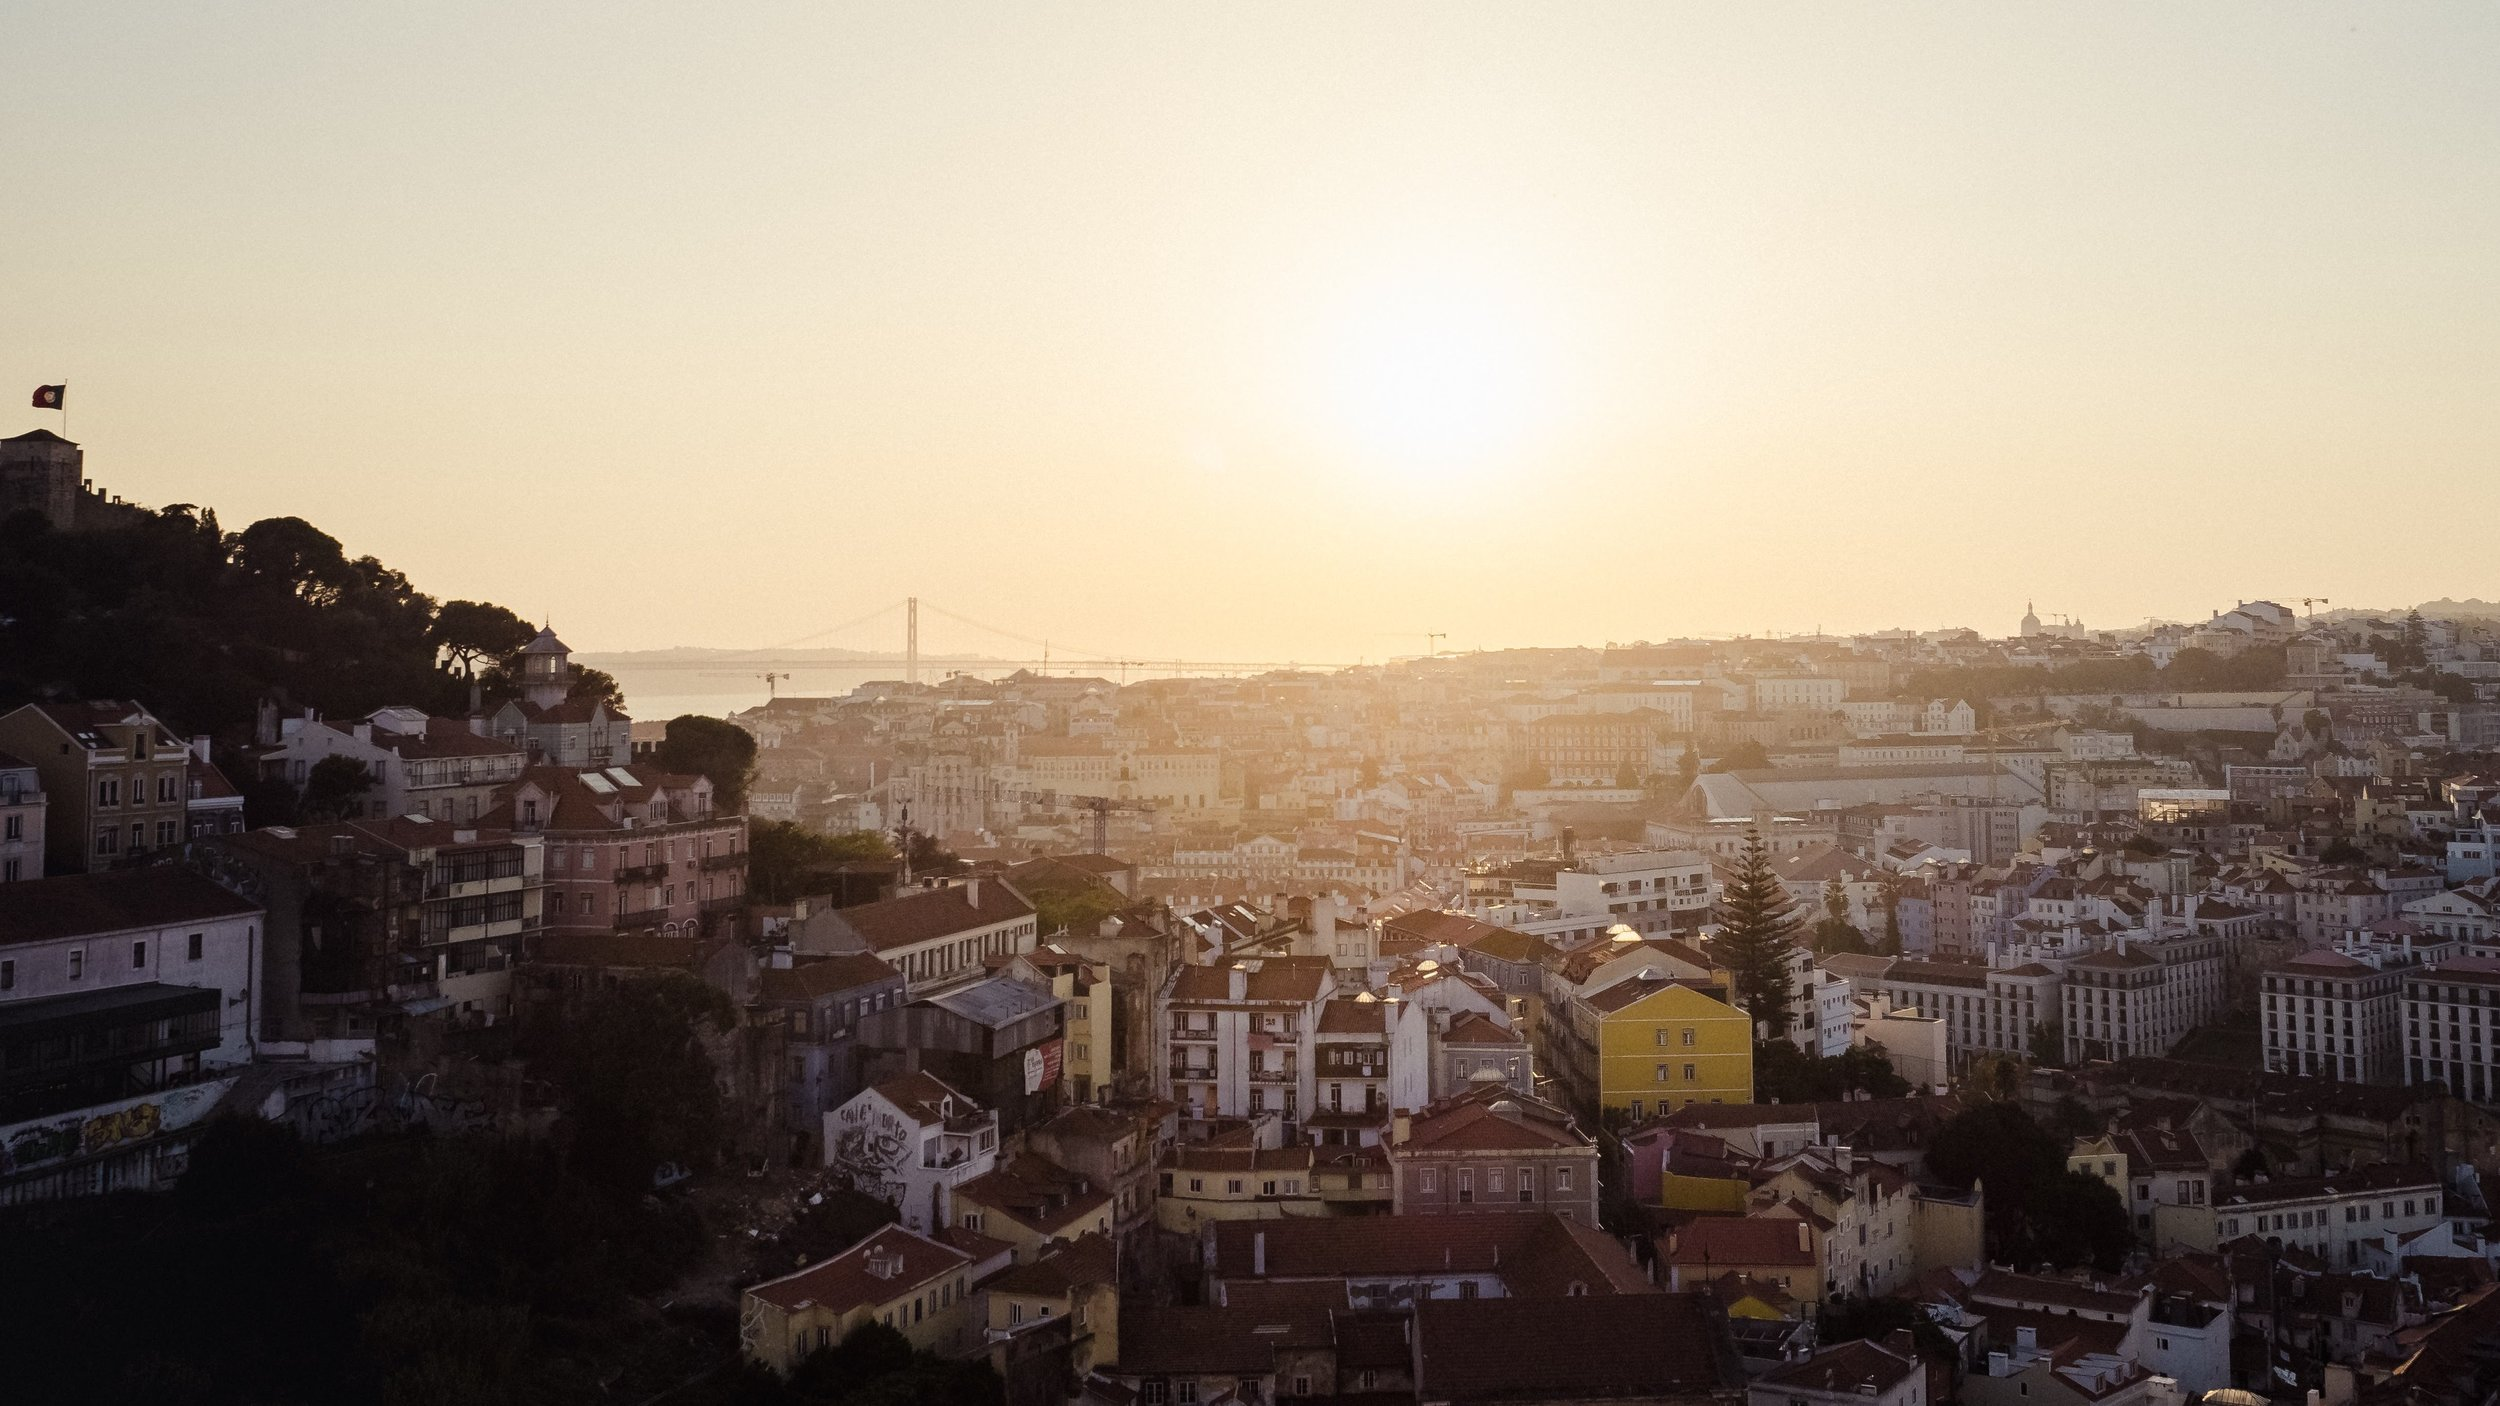 A Lisbon sunset, as seen from Miradoura da Graça.